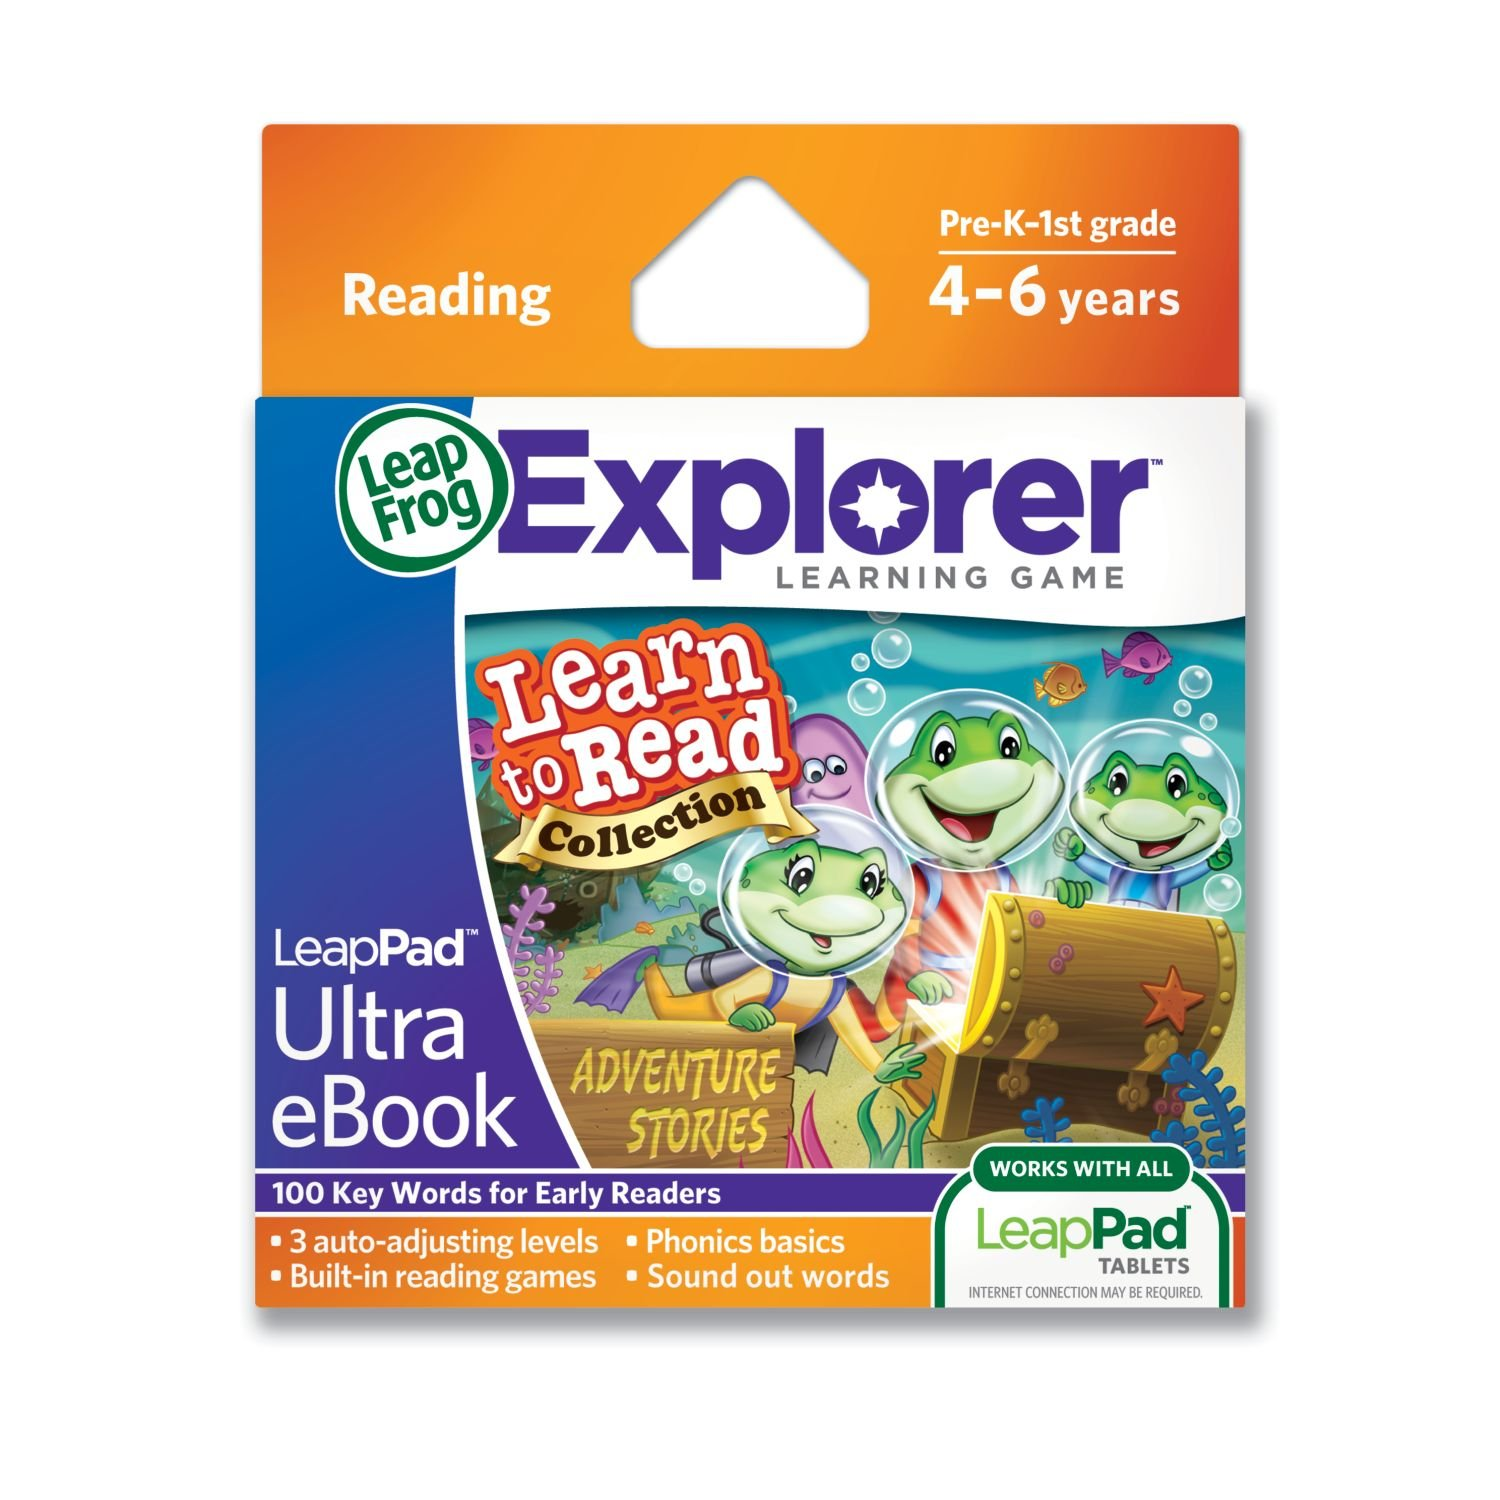 Amazon: Leapfrog Leappad Ultra Ebook Learn To Read Collection:  Adventure Stories (works With All Leappad Tablets): Toys & Games